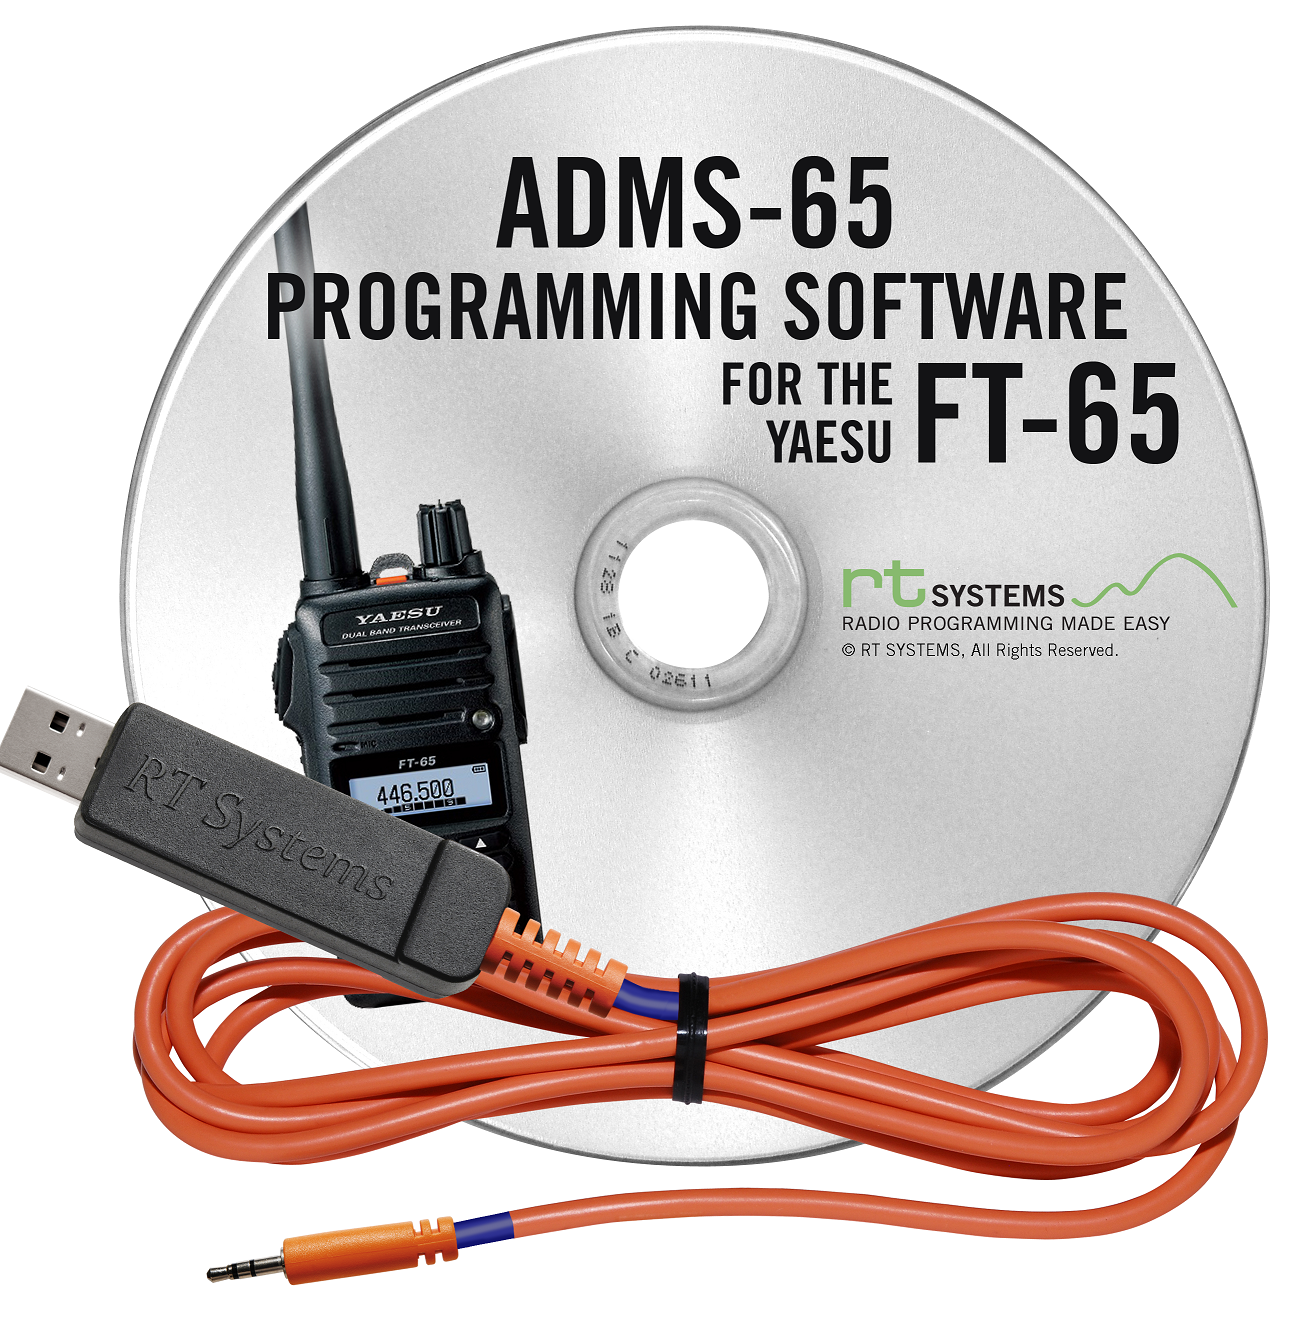 Rt Systems Adms 65 Programming Software And Usb 55 Cable For The Electrical Wiring Made Easy Yaesu Ft 65r